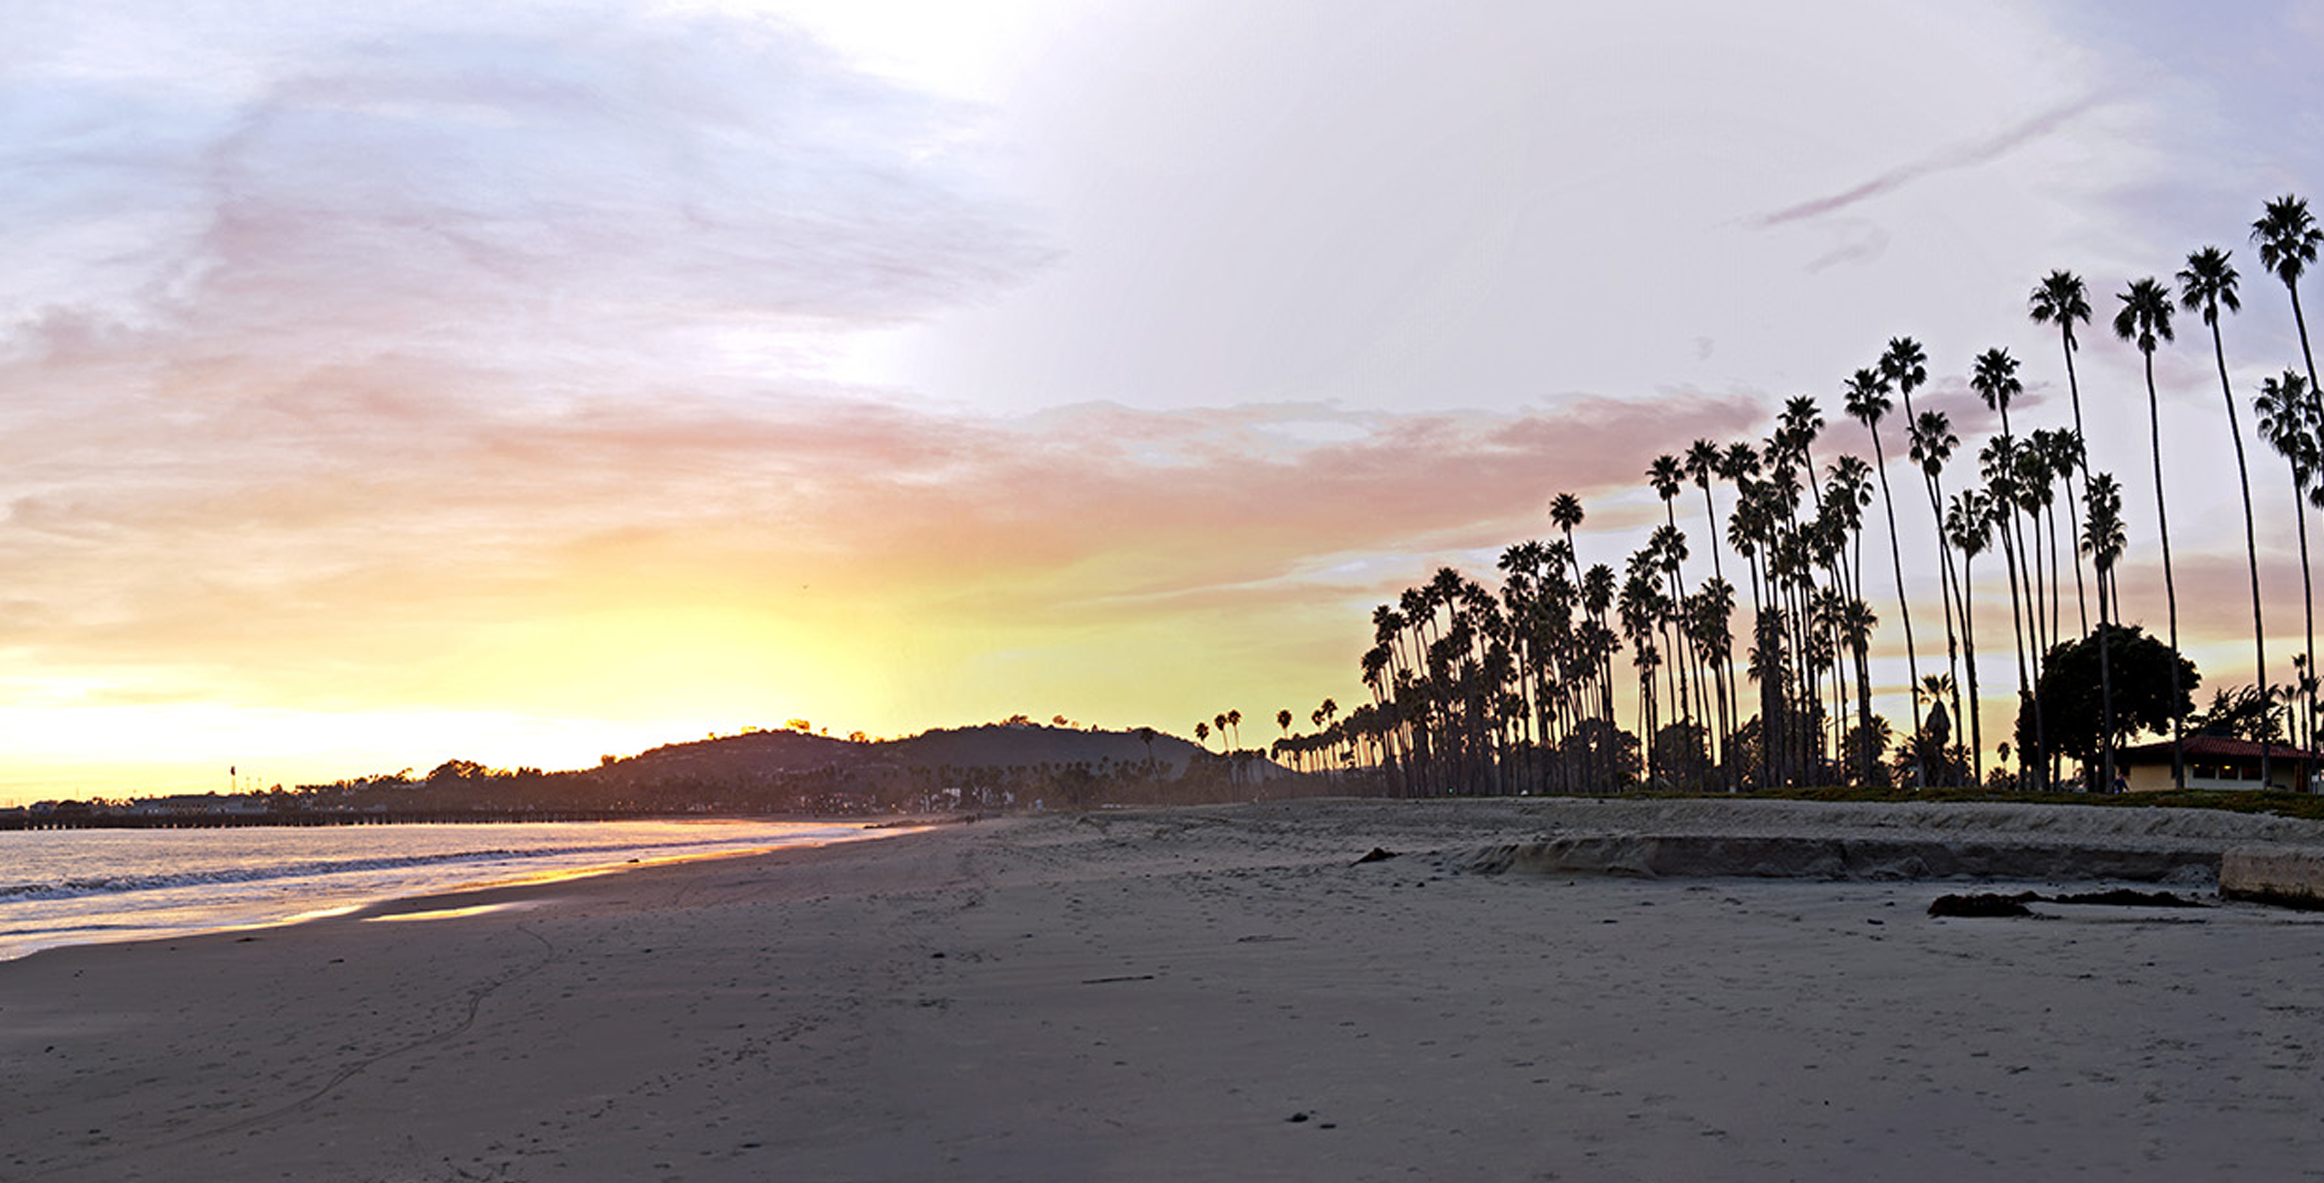 TAKE IN THE BEAUTY OF SANTA BARBARA AS A GUEST OF LA PLAYA INN